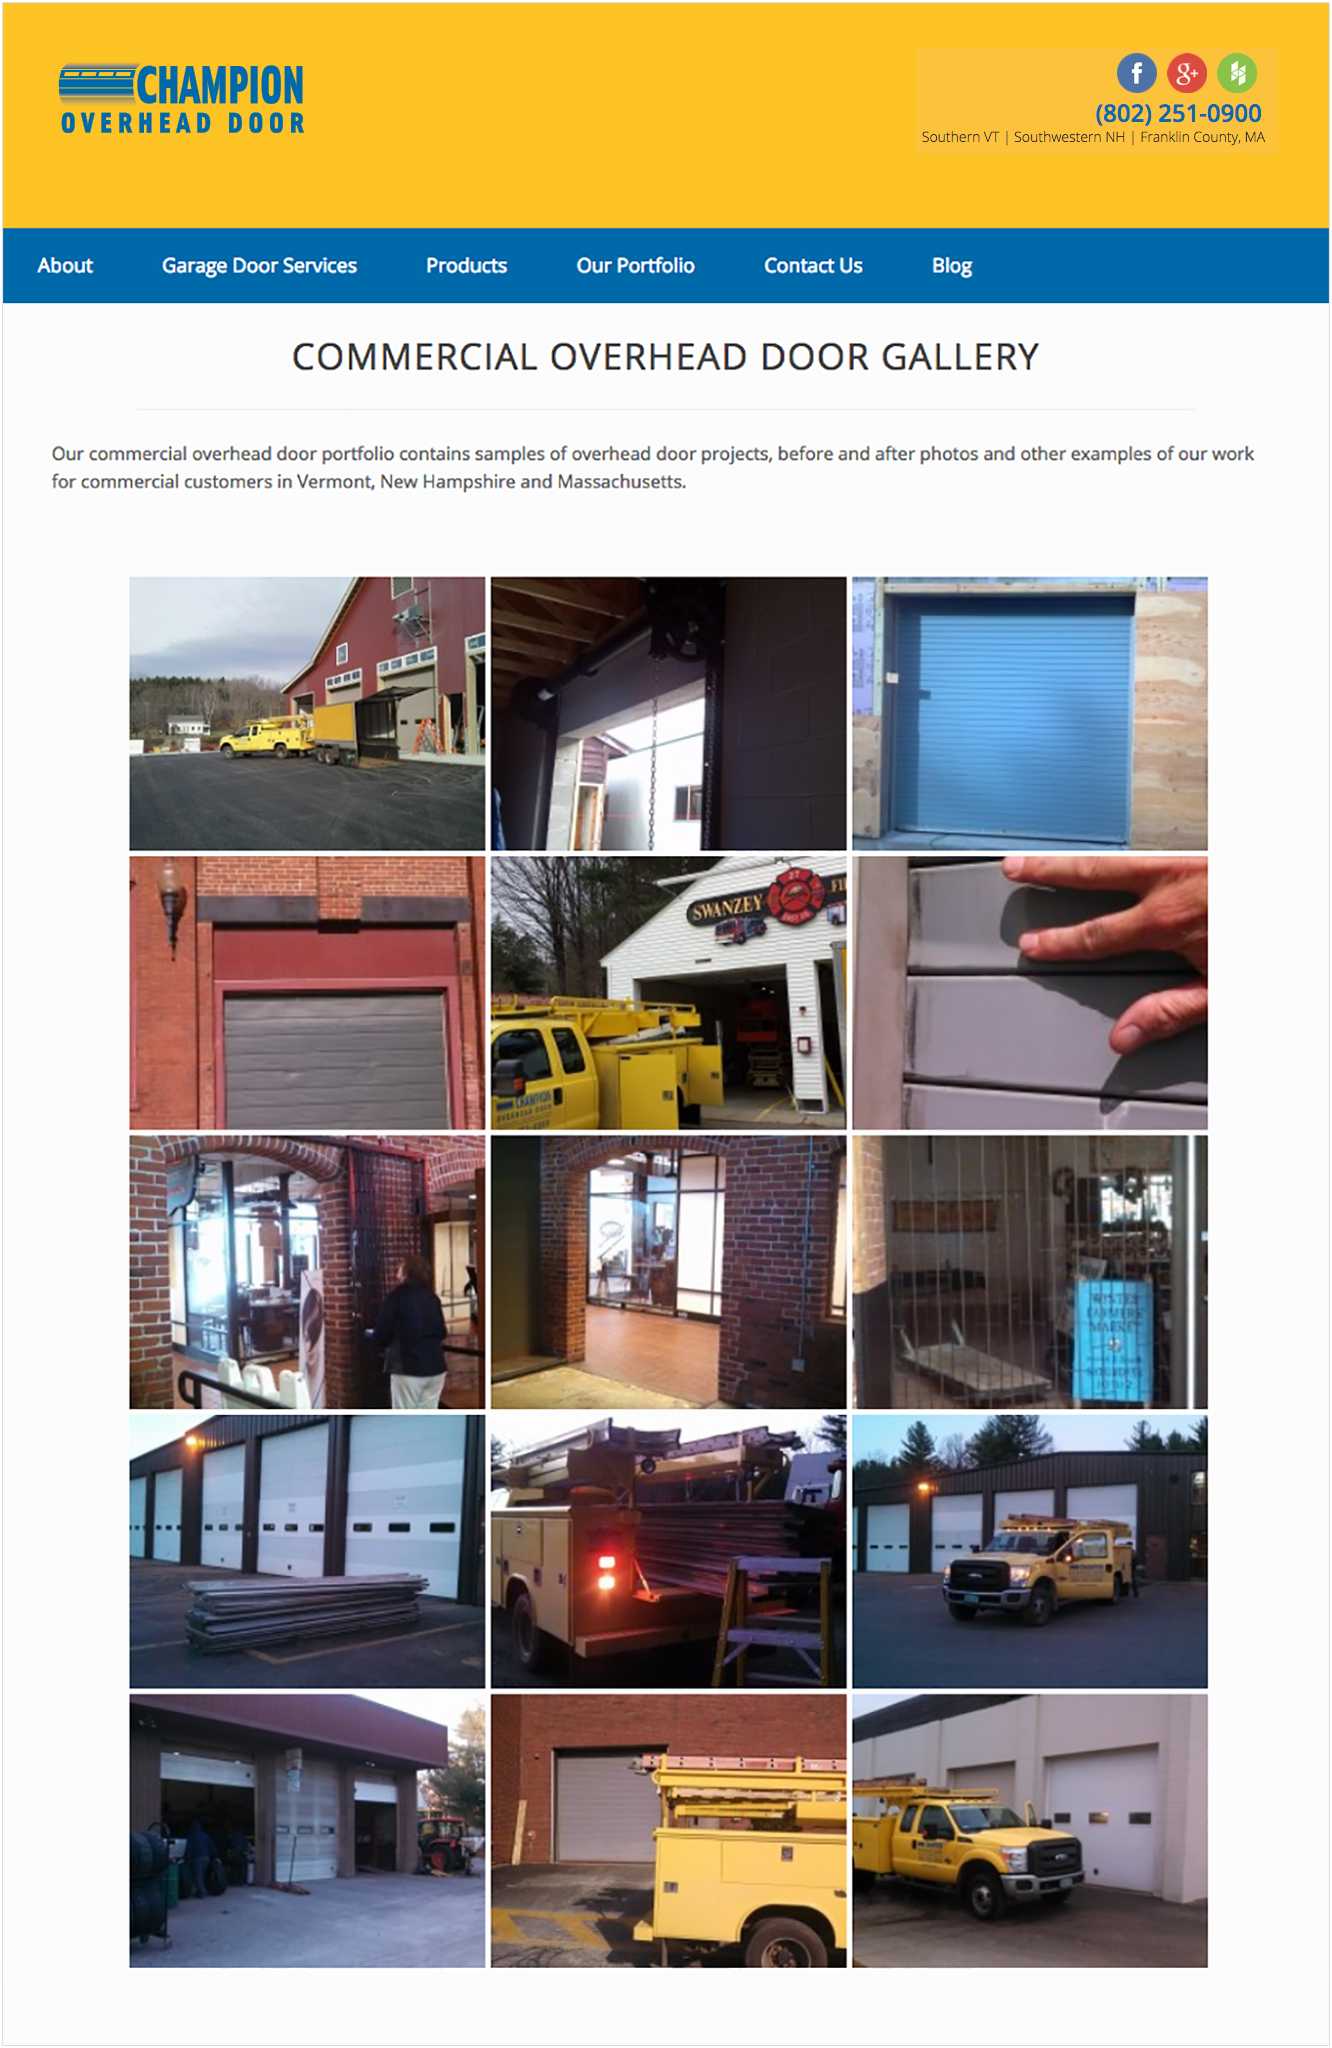 Champion Overhead Door client installation photos screenshot